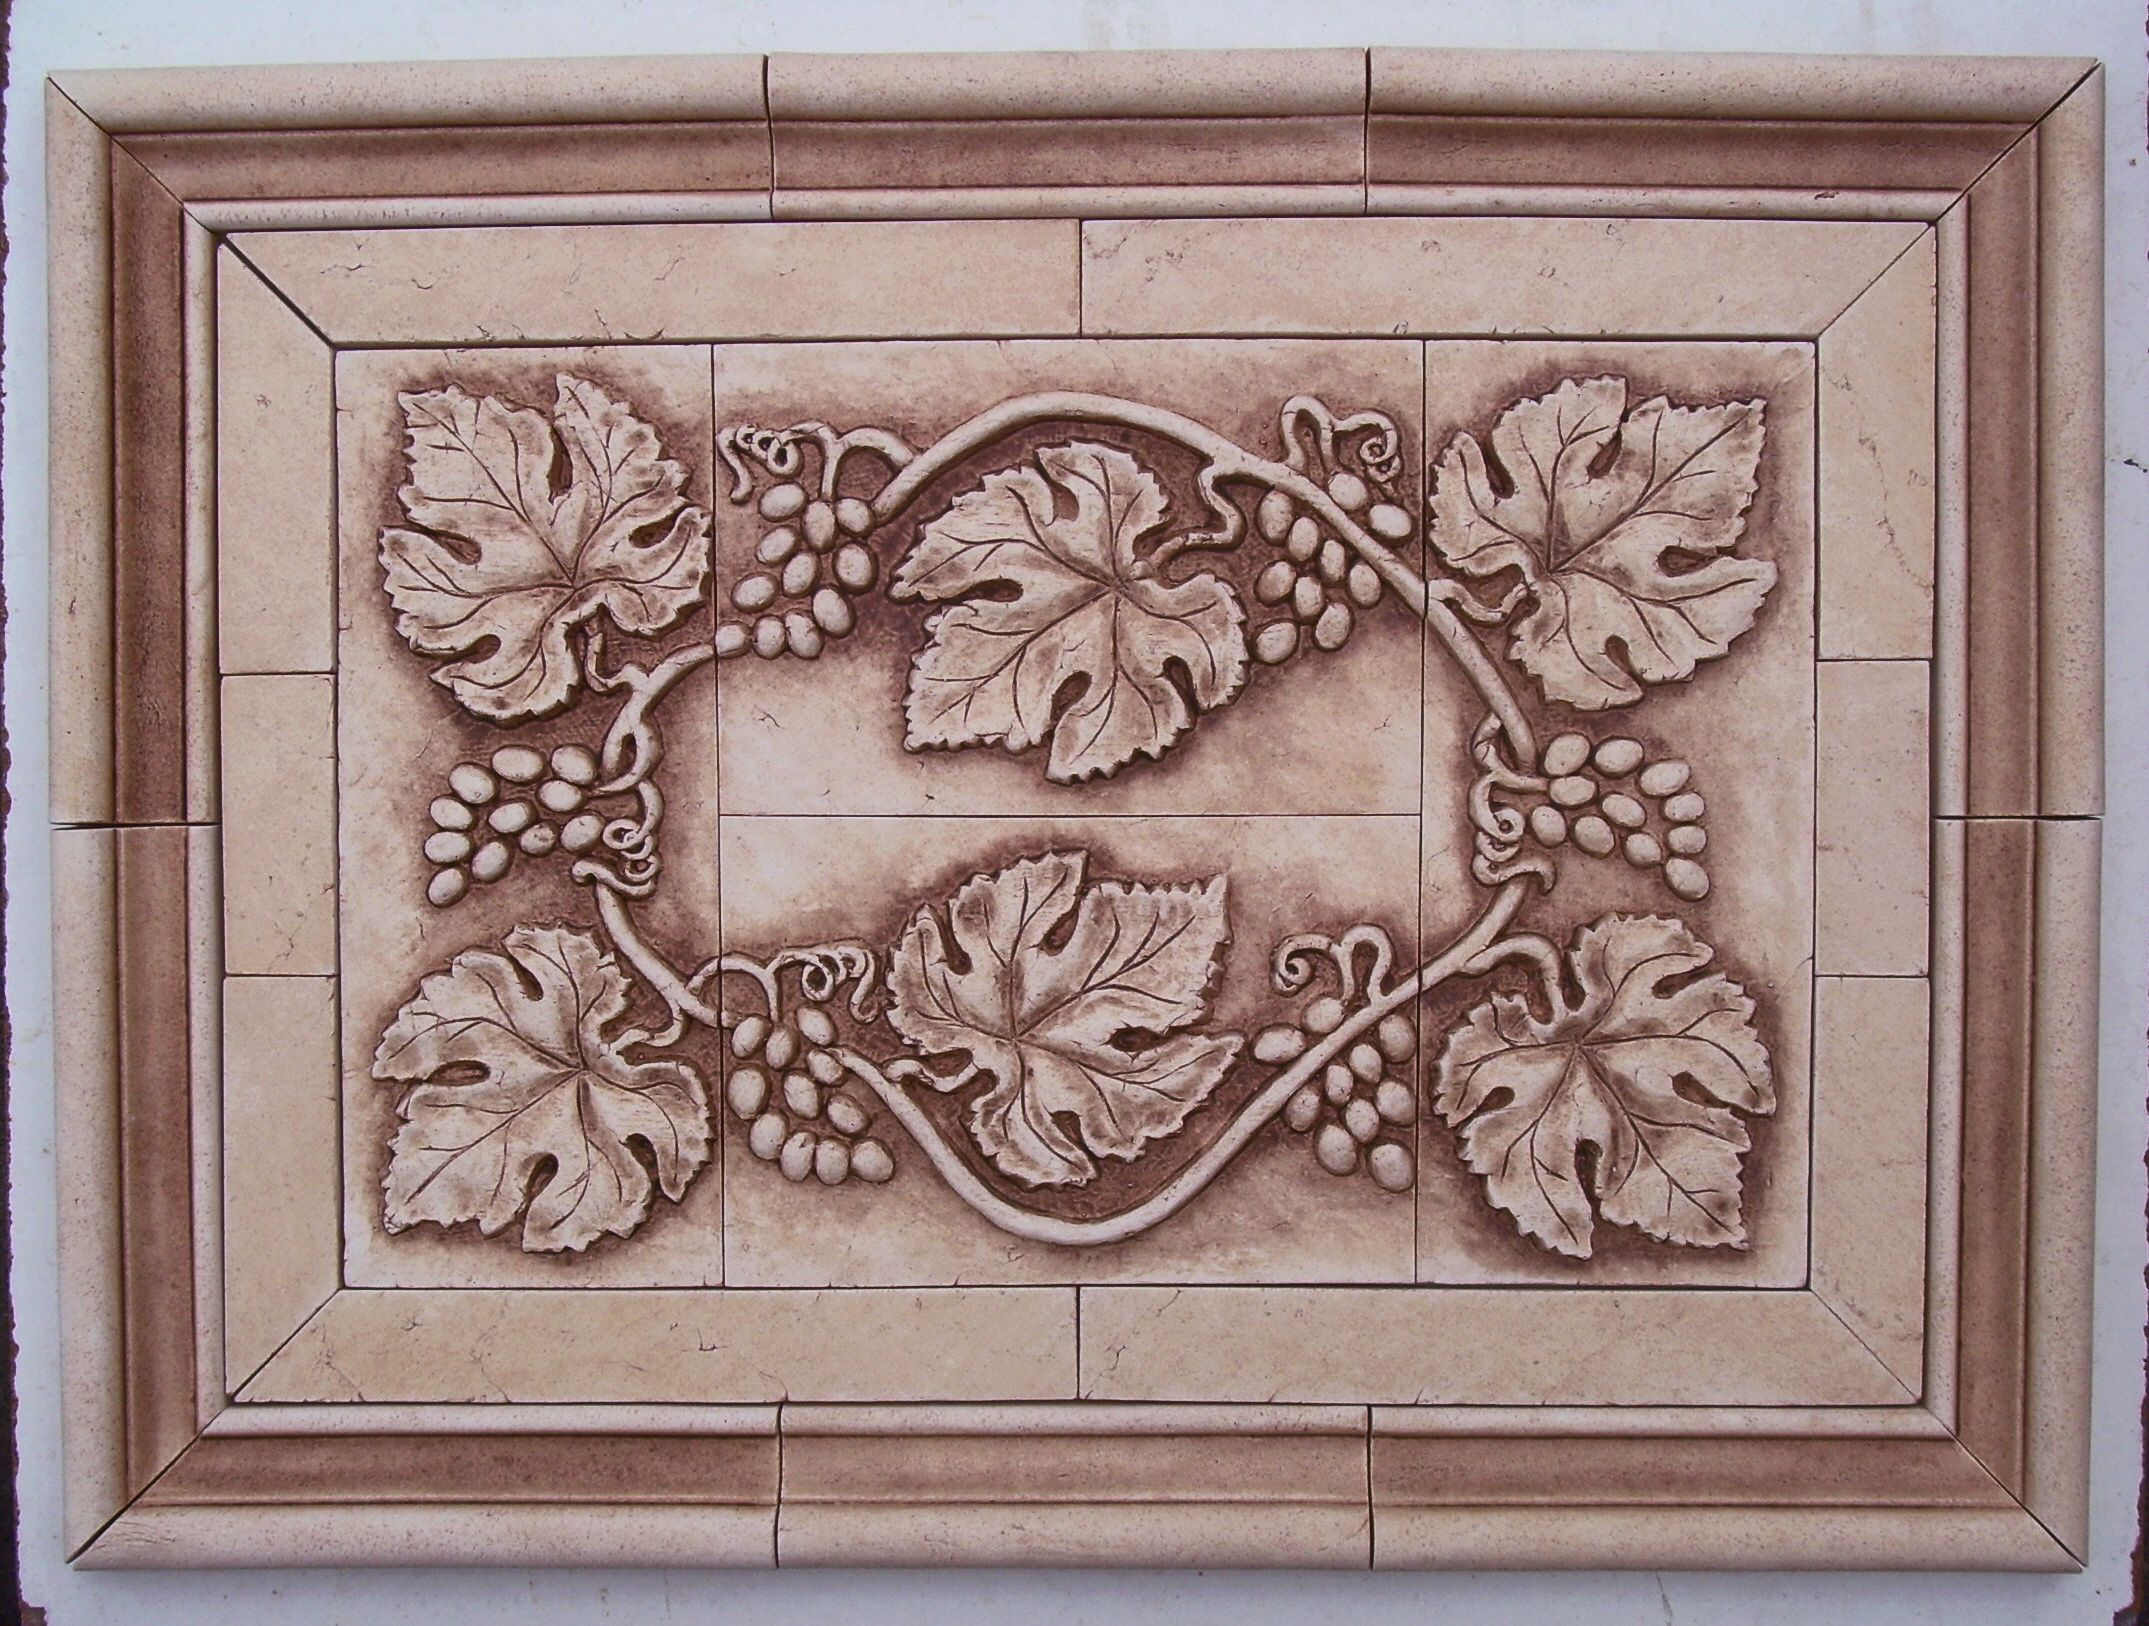 Decorative Tile Medallions Grapevine Tile Medallion  Large Hand Pressed Decorative Tiles